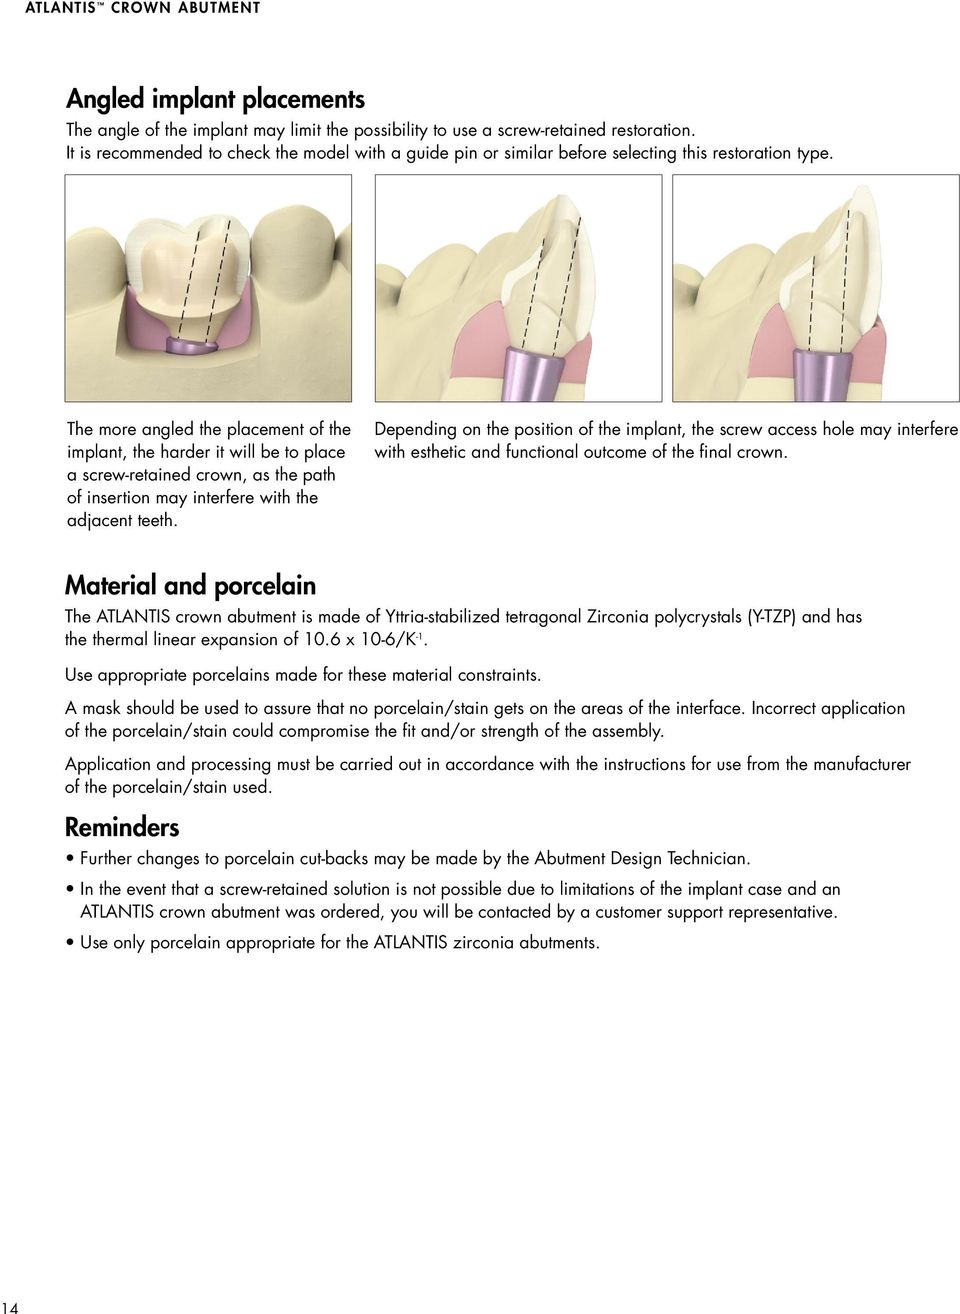 The more angled the placement of the implant, the harder it will be to place a screw-retained crown, as the path of insertion may interfere with the adjacent teeth.